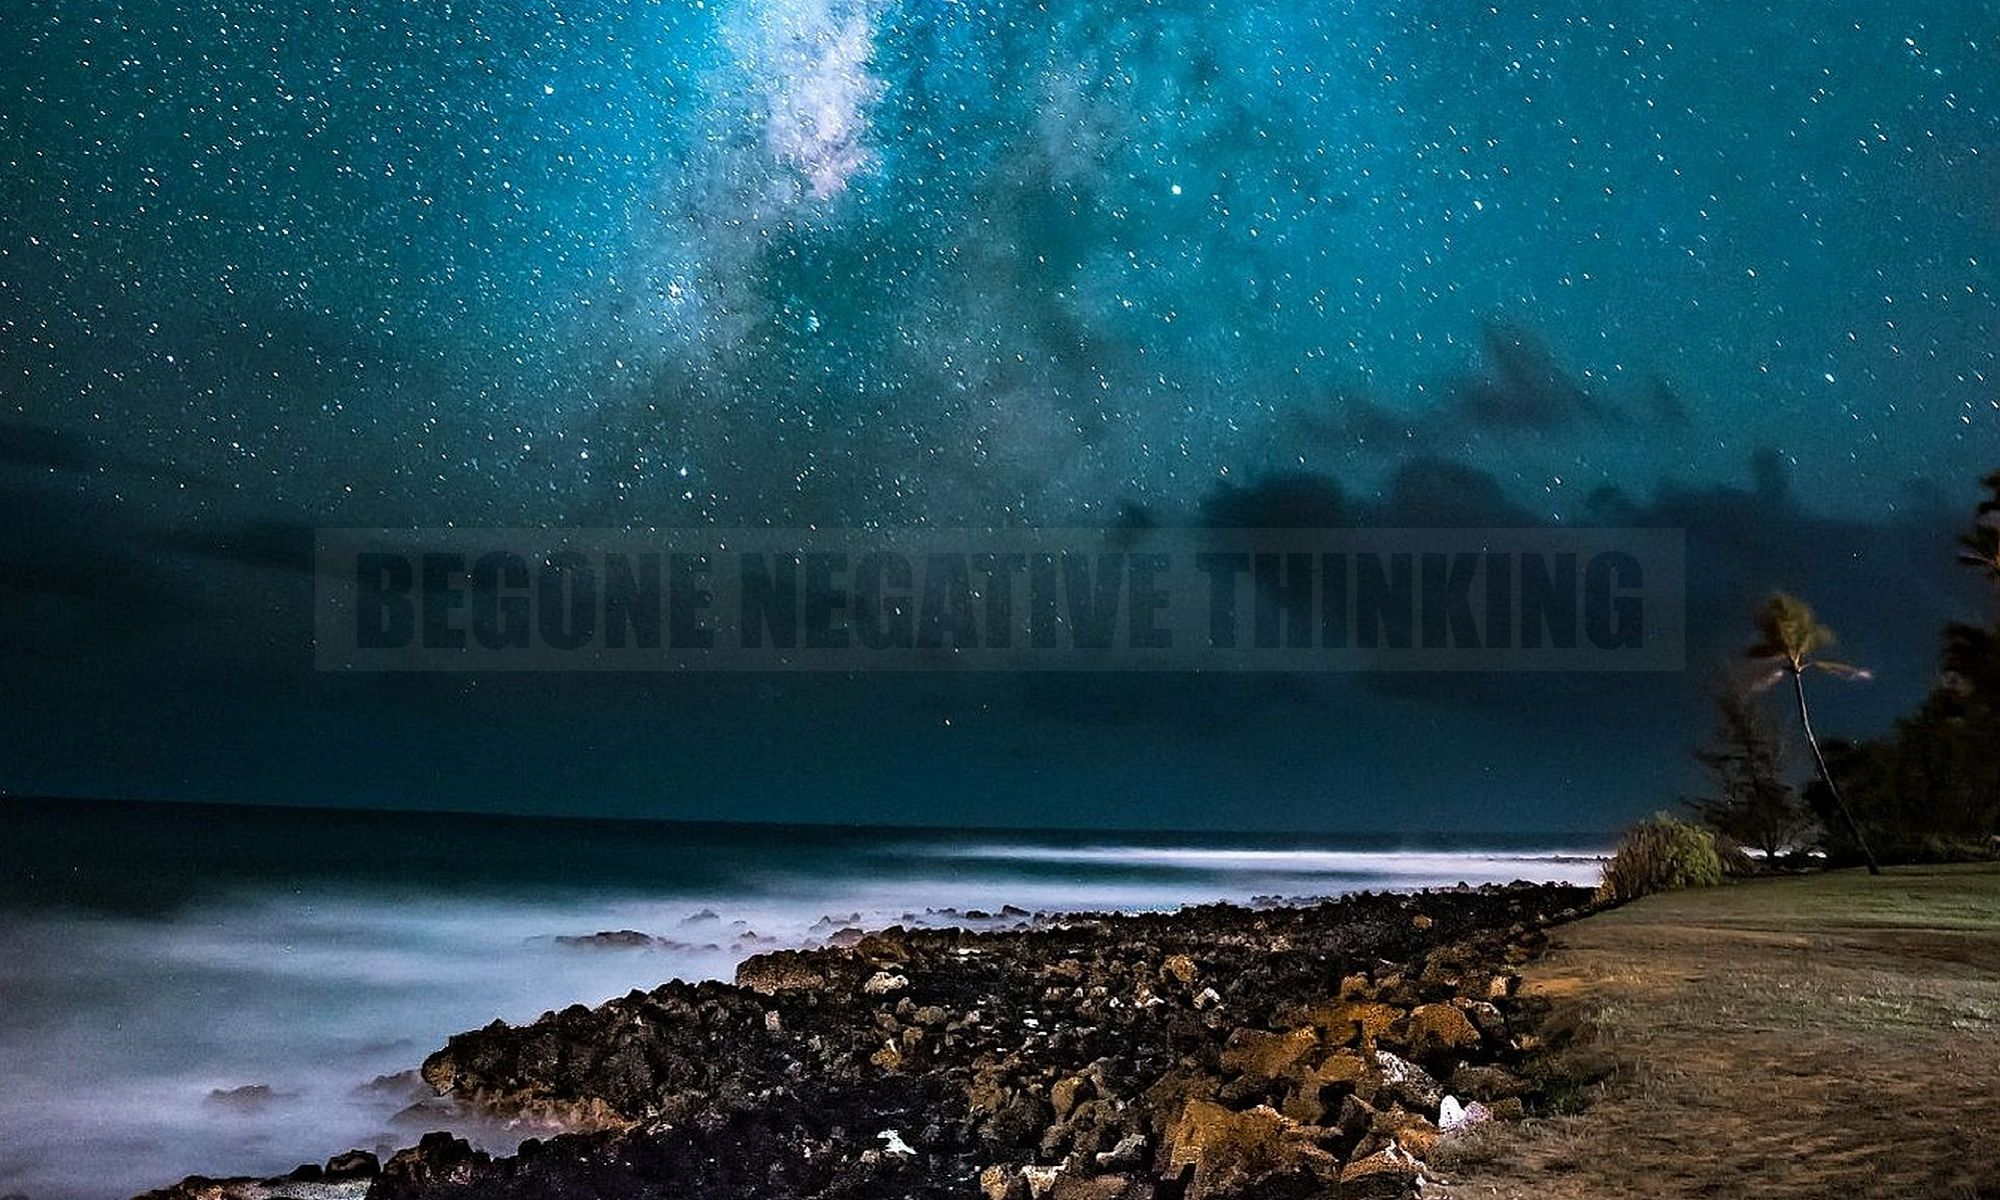 Metaphysical-concepts-how-do-I-change-negative-thinking-to-stop-worry-fear-doubt